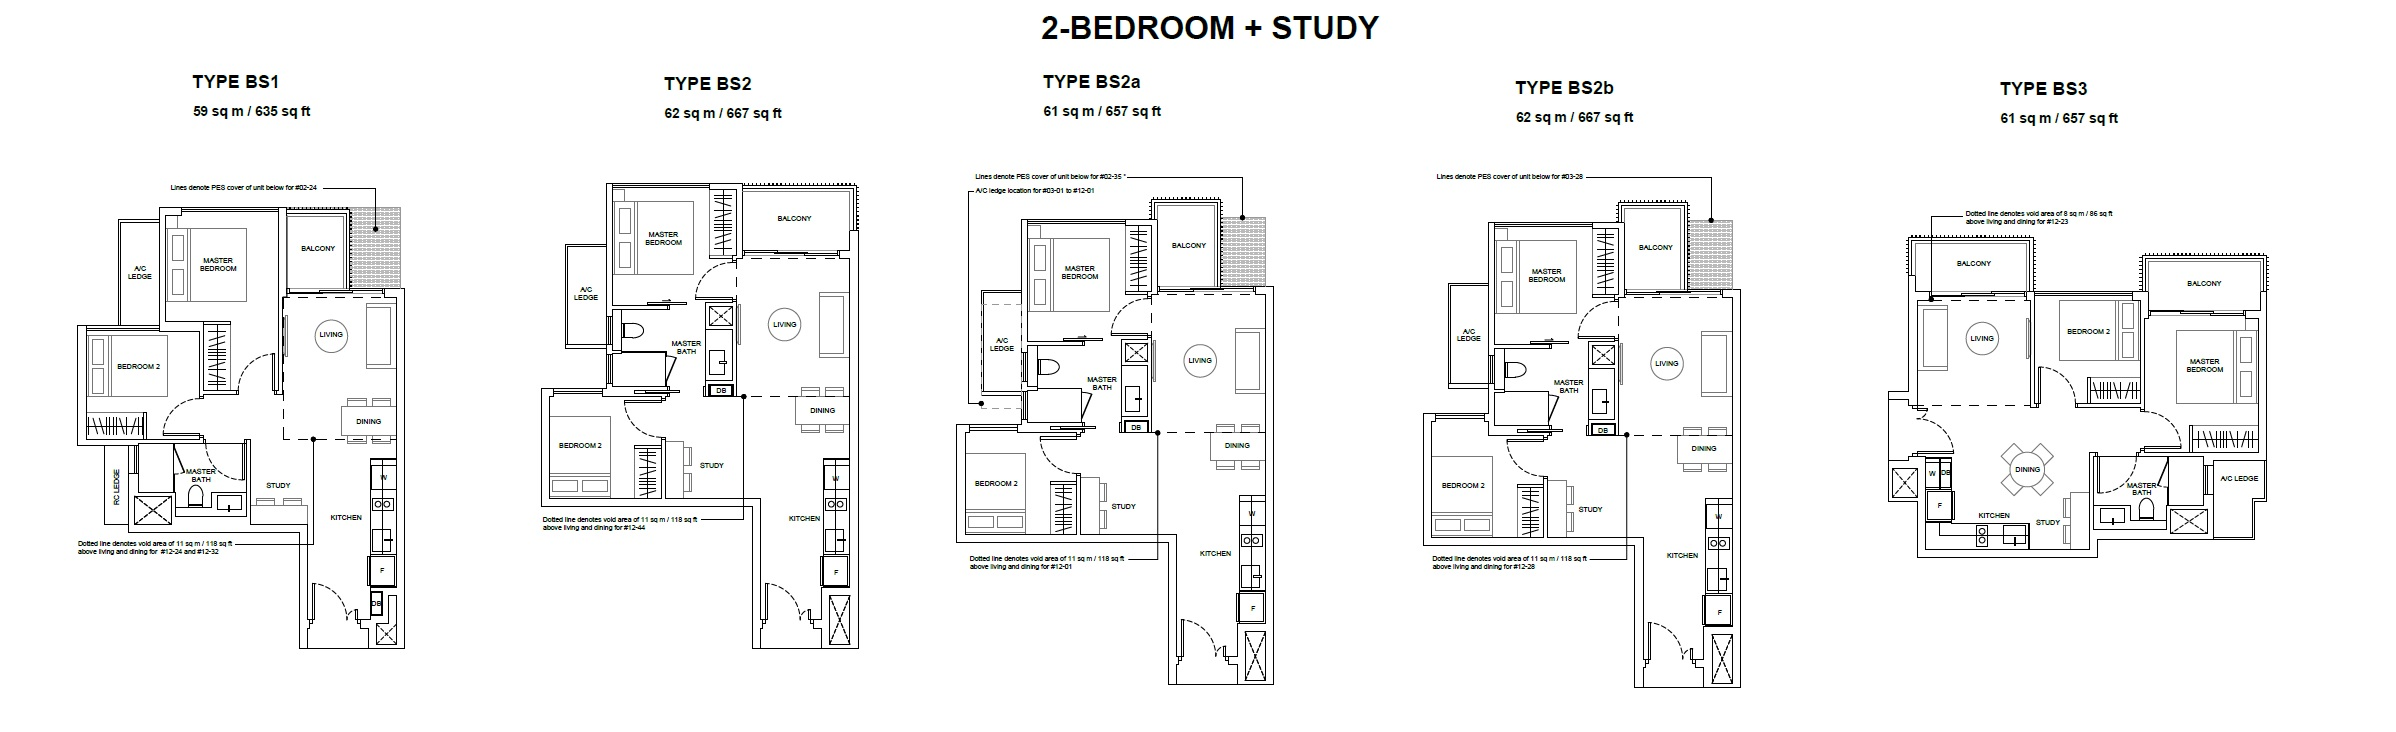 Forest Woods Floor Plan for Two Bedroom Plus Study